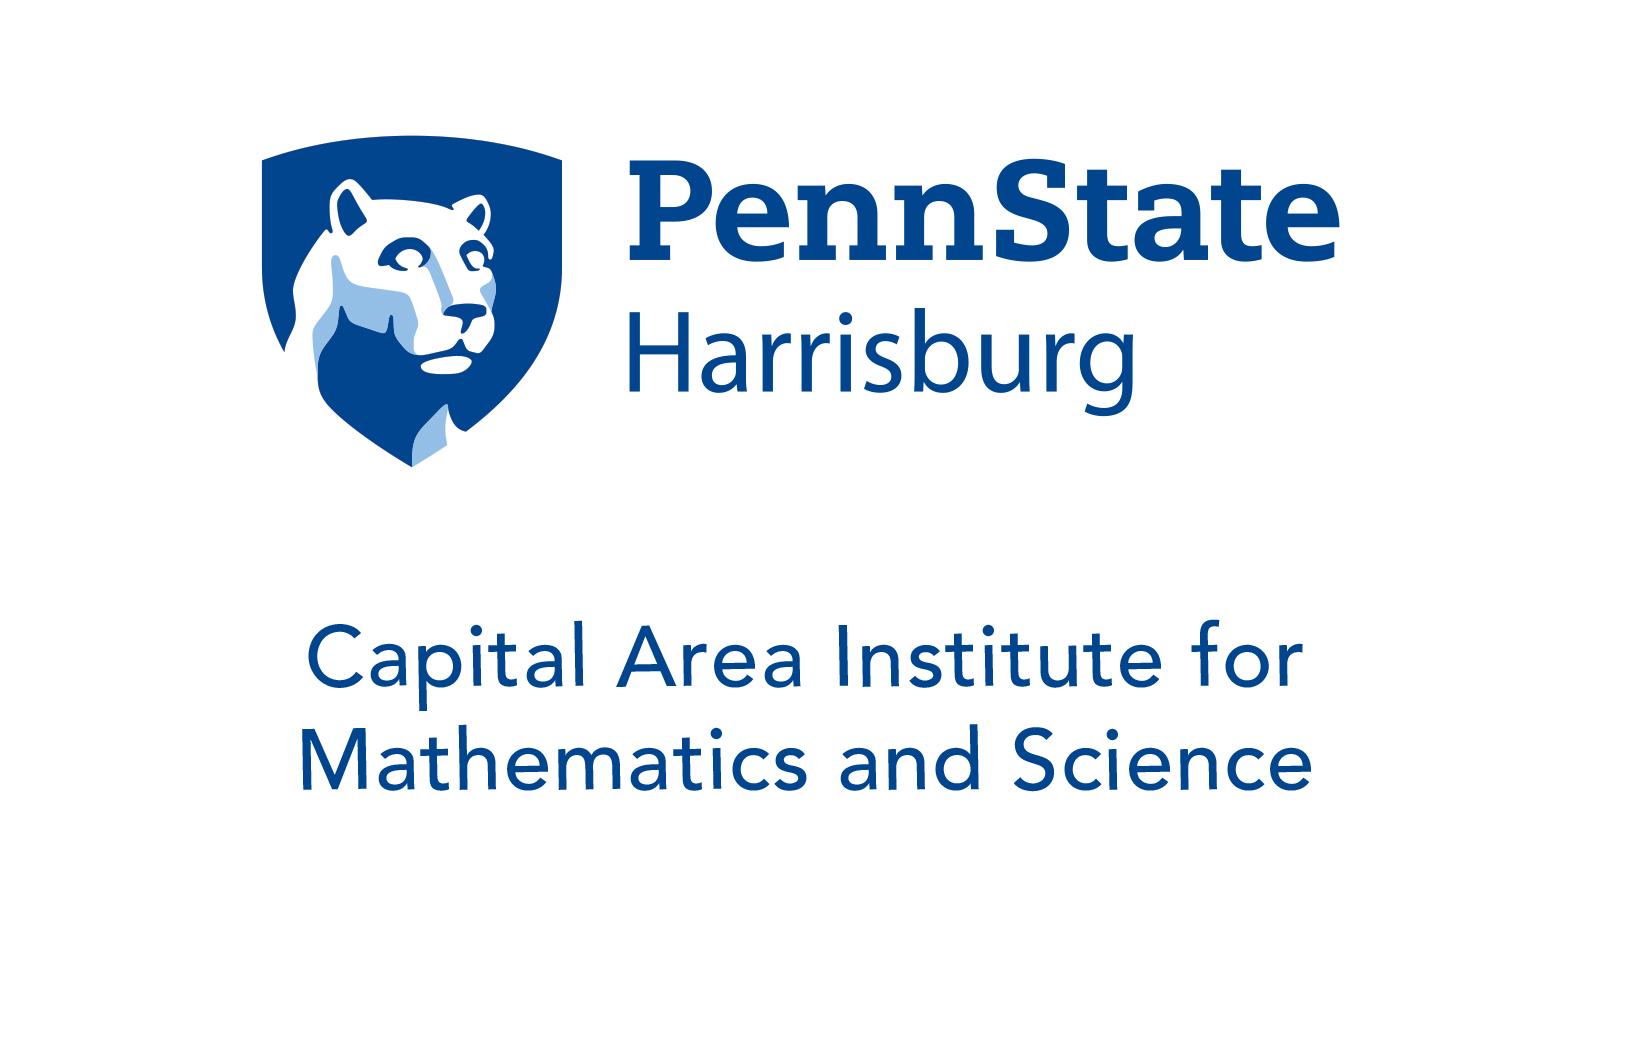 Penn State Harrisburg: Capital Area Institute for Mathematics and Science (CAIMS)